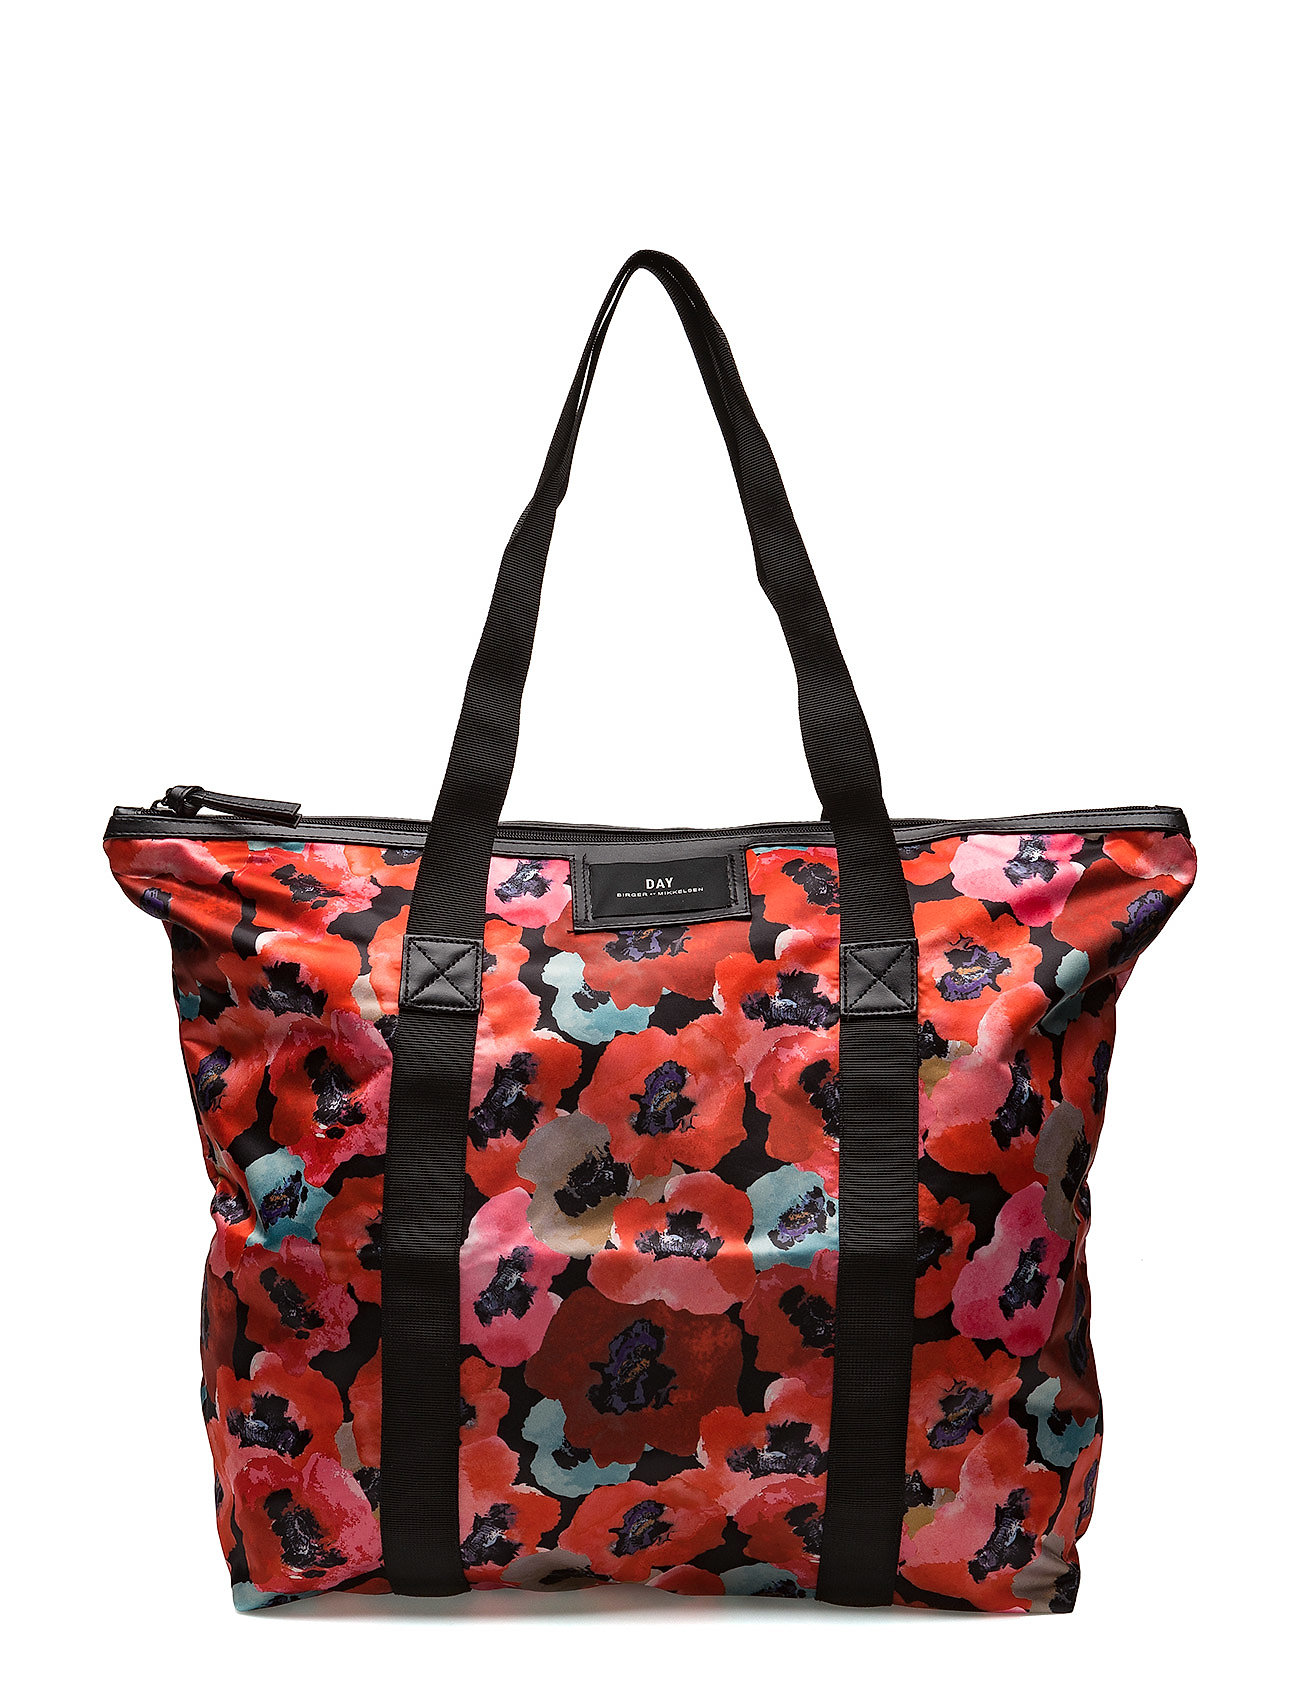 DAY et Day Nero P Poppy Bag